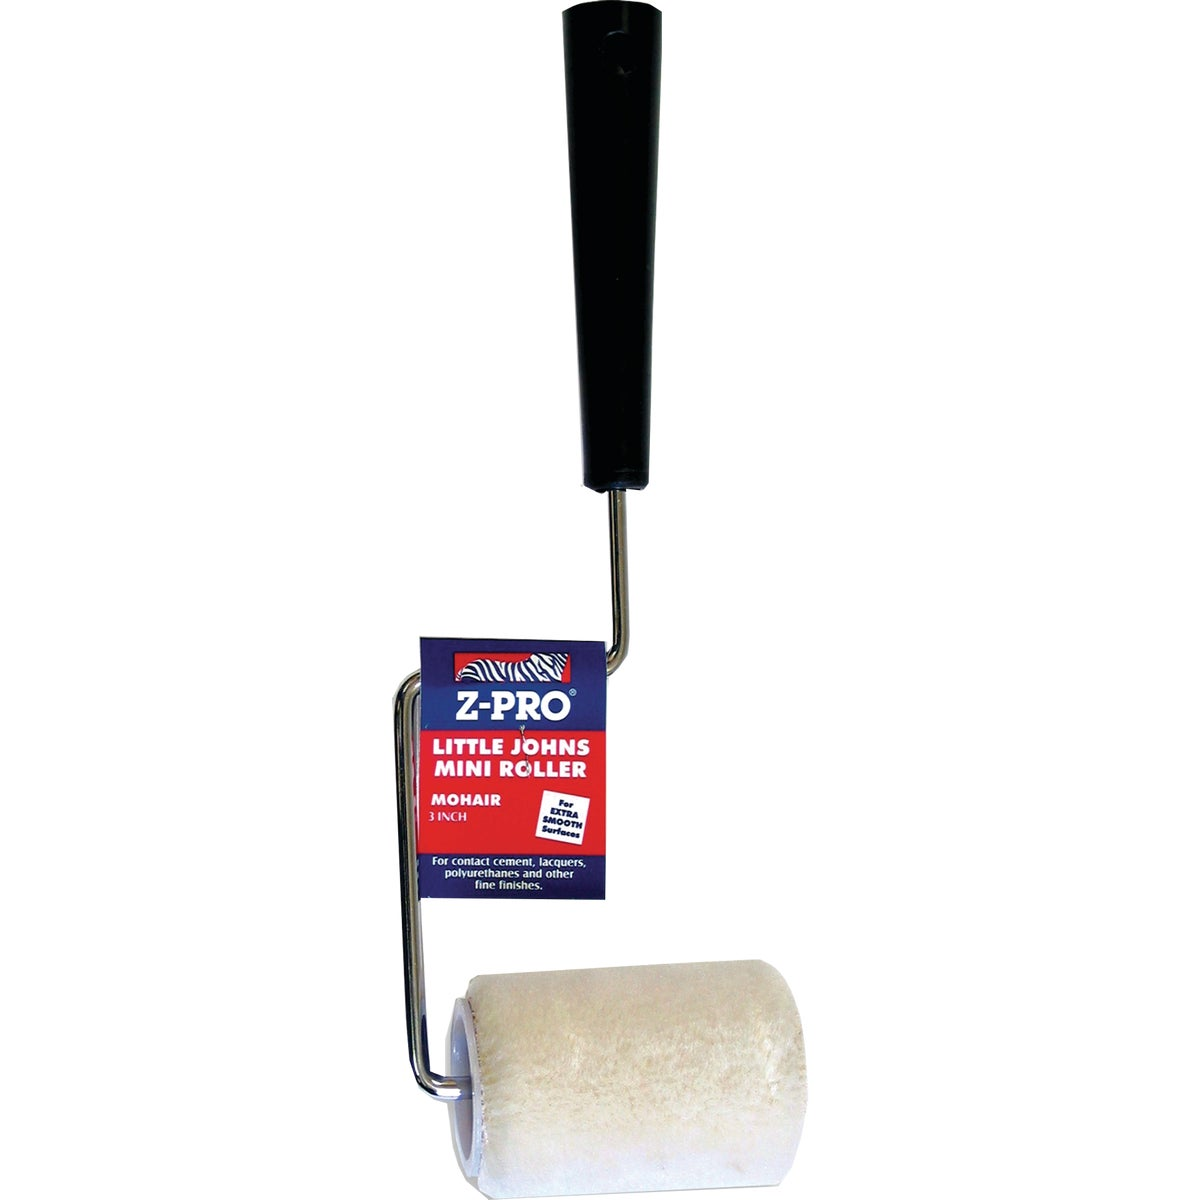 "3"" MOHAIR COVER & FRAME - 705 by Premier Paint Roller"